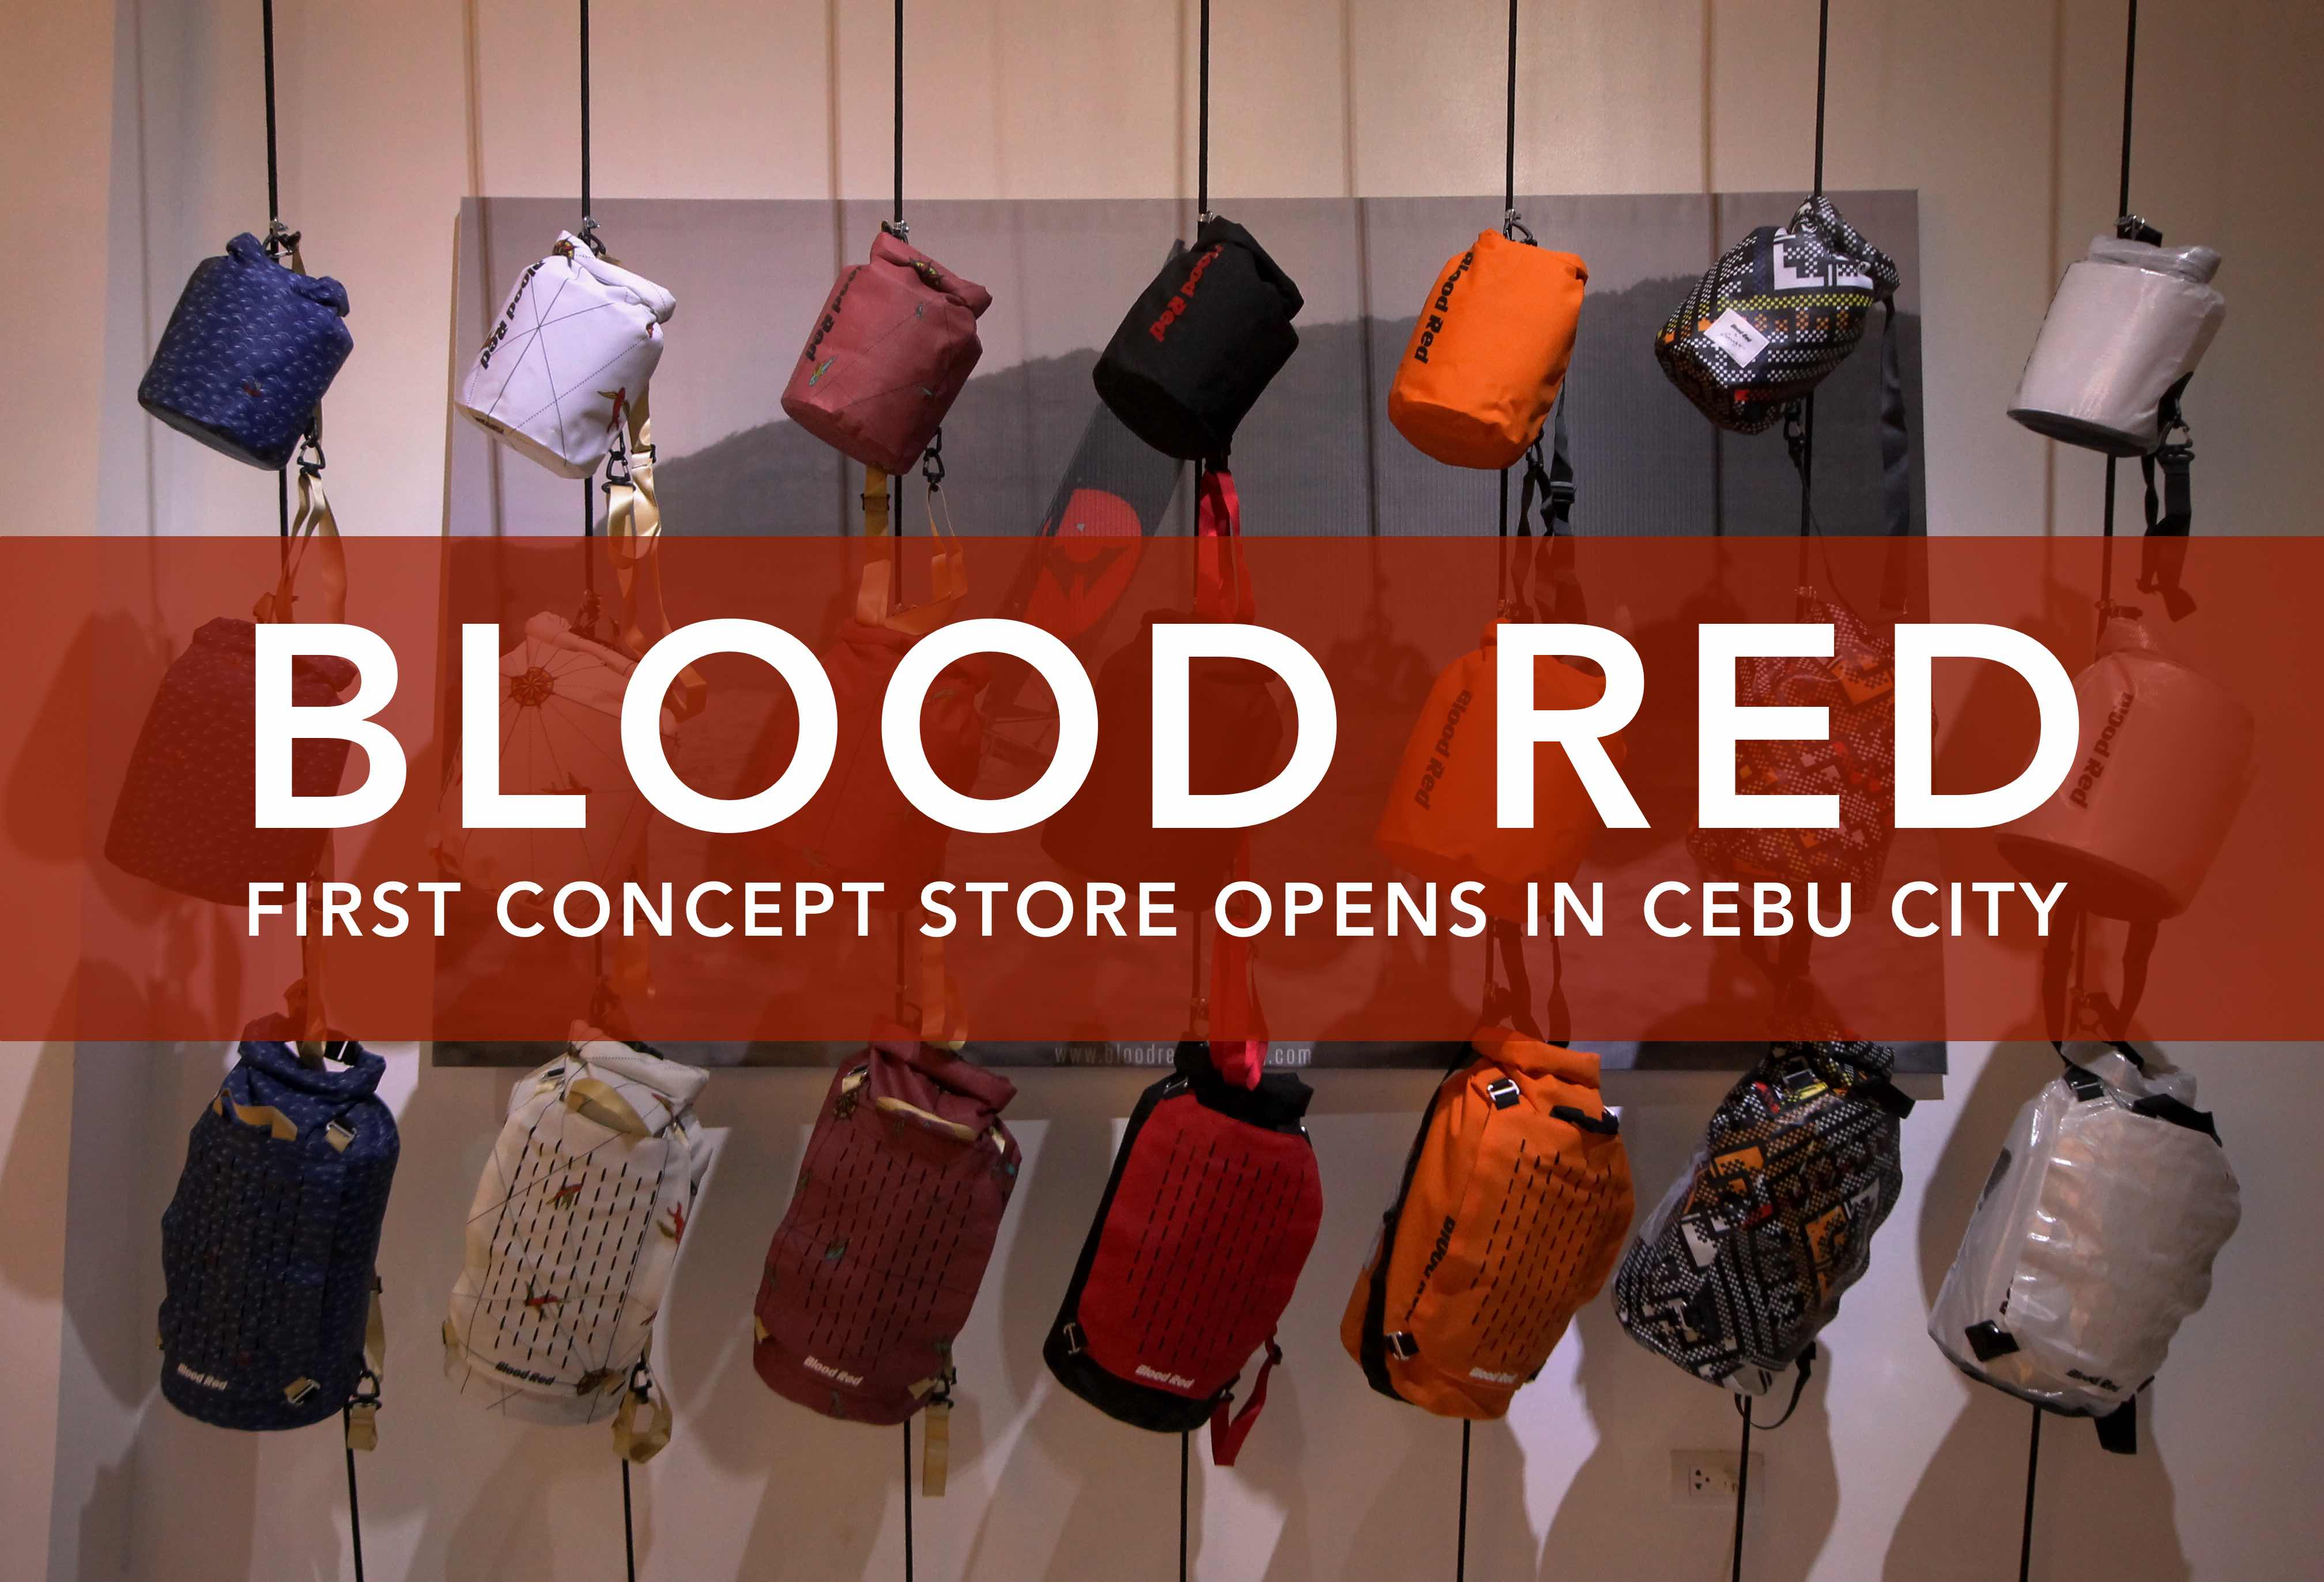 Clothing stores in cebu city